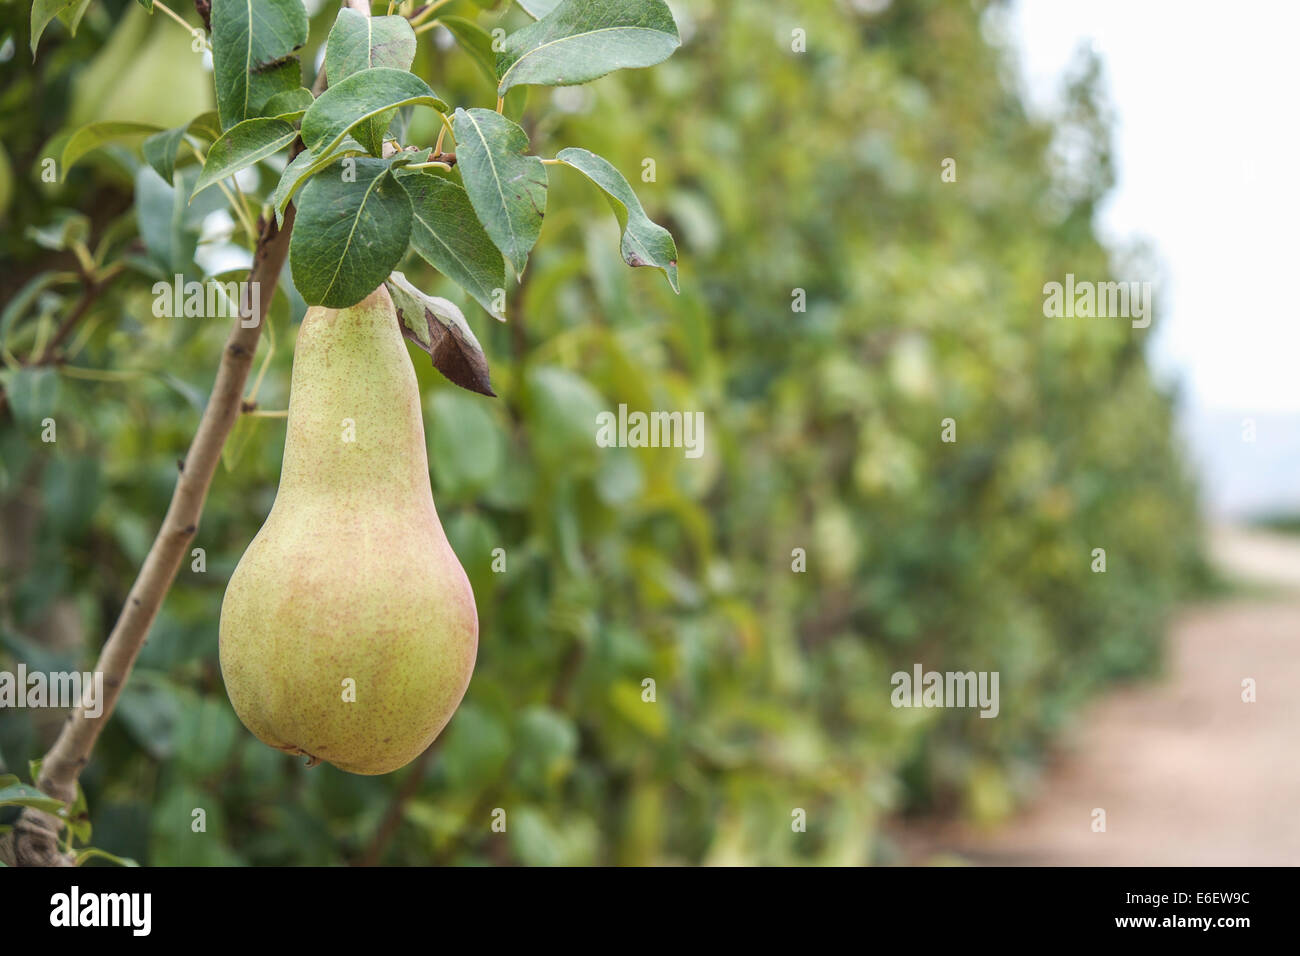 Pear and fruits in Spain don't harvest by Russian Boycott to EU Stock Photo